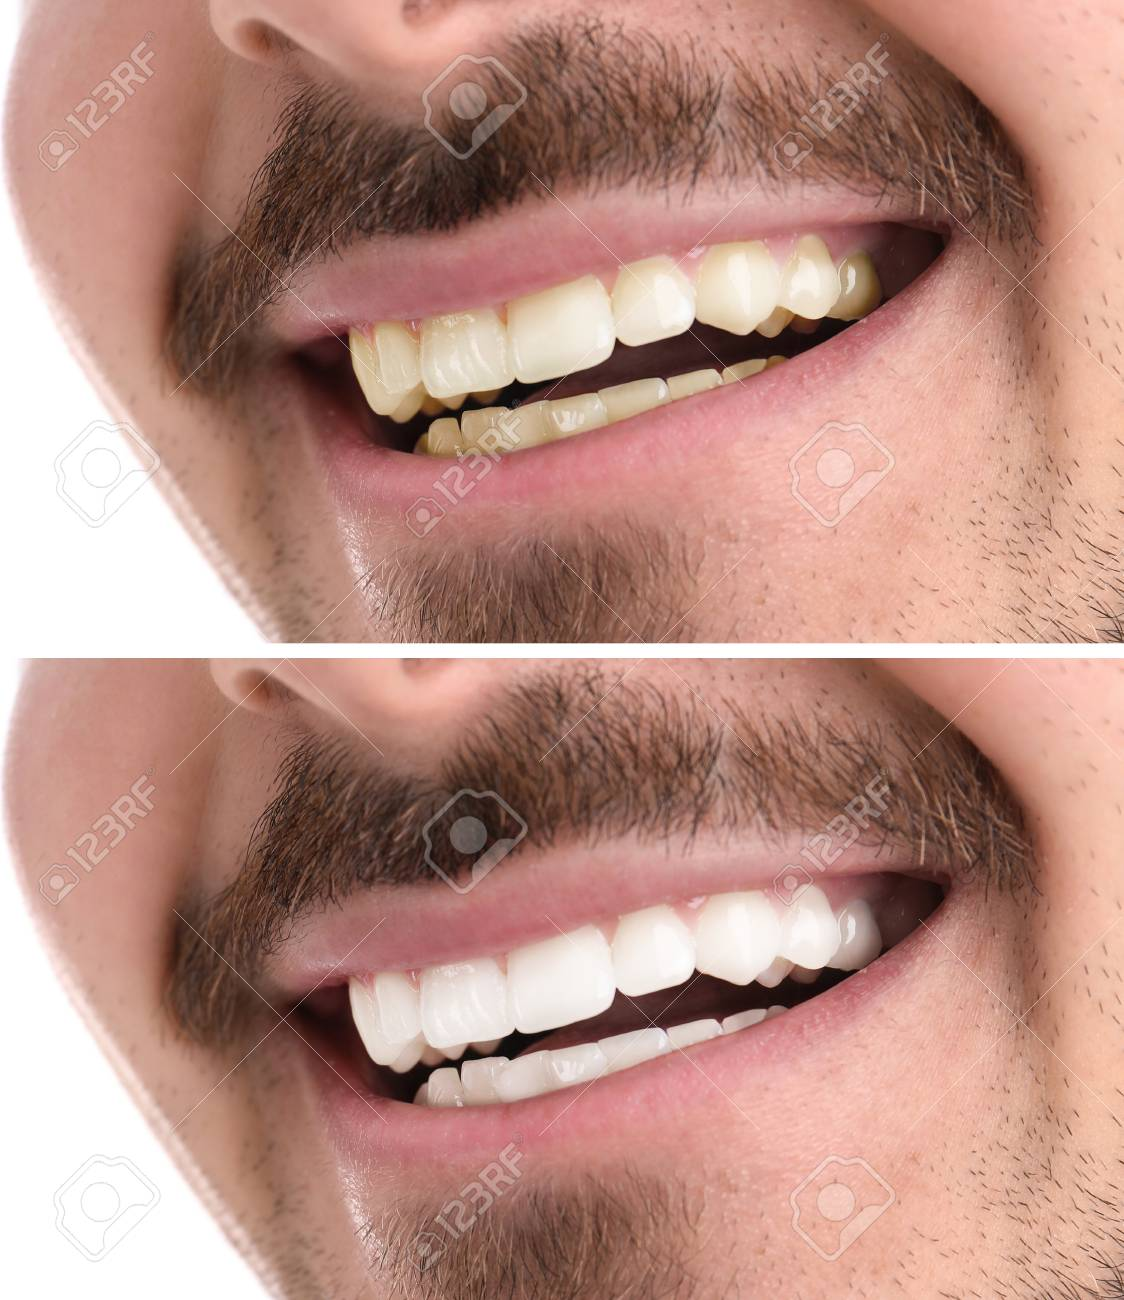 Smiling Man Before And After Teeth Whitening Procedure Closeup